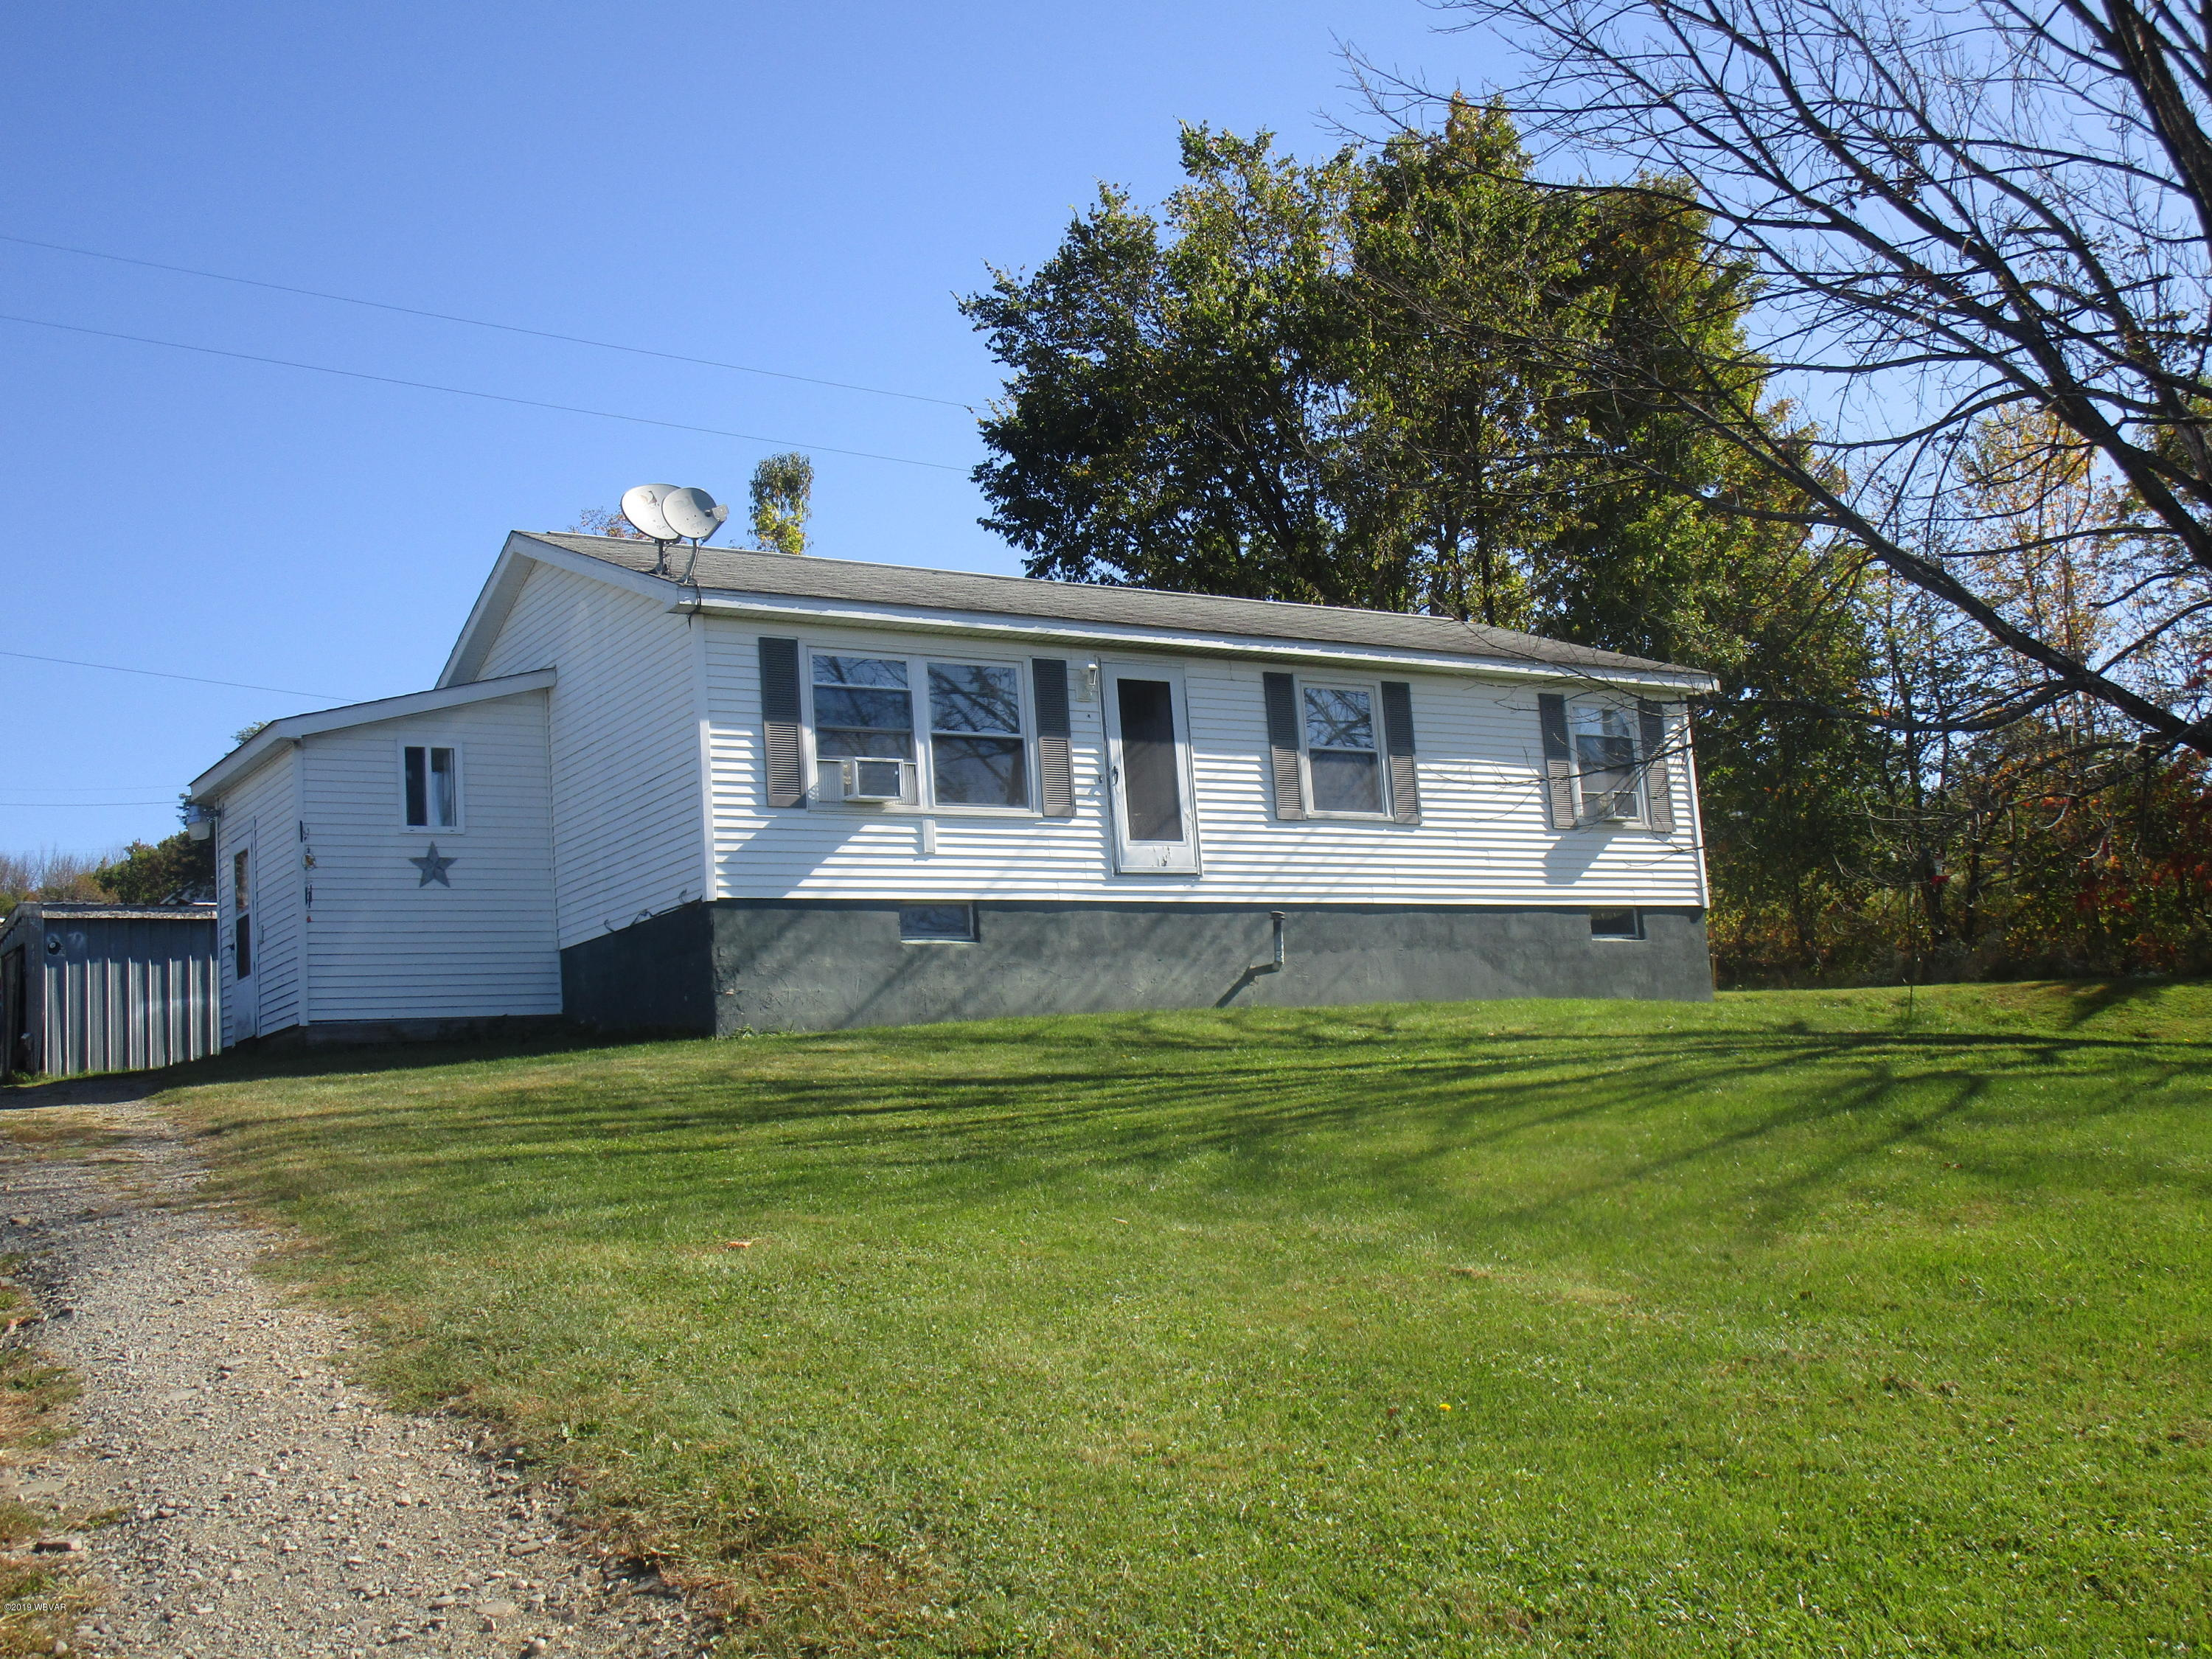 491 SPENCER HILL ROAD,Granville Summit,PA 16926,3 Bedrooms Bedrooms,1 BathroomBathrooms,Residential,SPENCER HILL,WB-88744